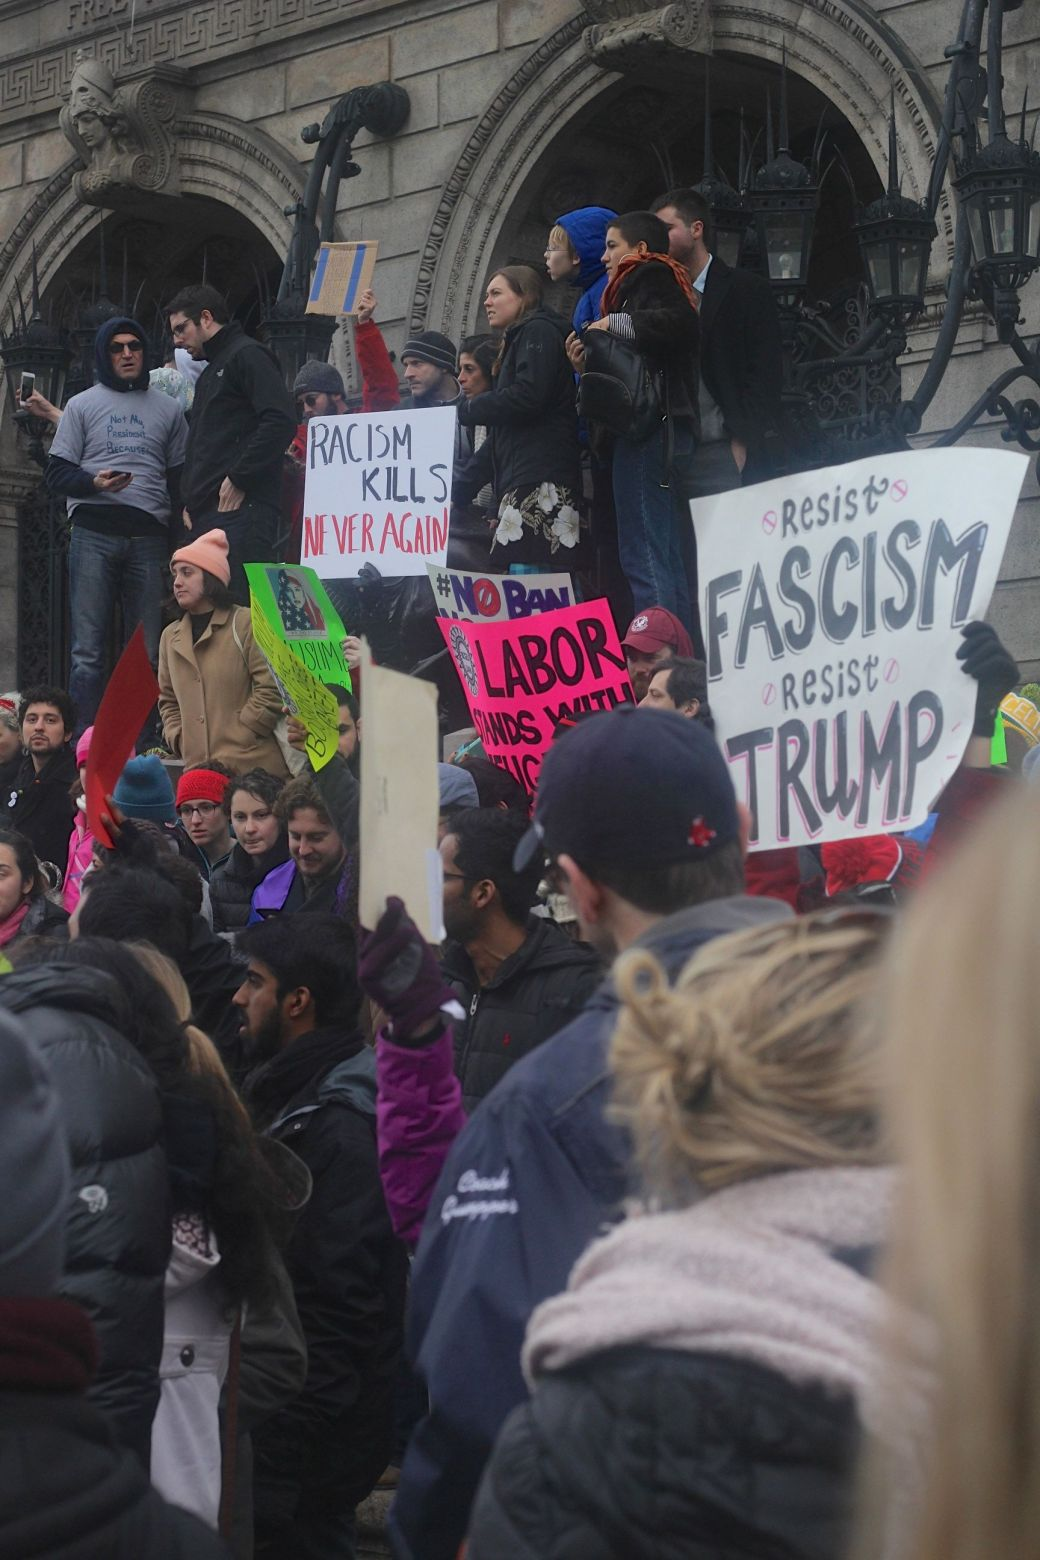 boston-immigration-march-january-29-2017-9